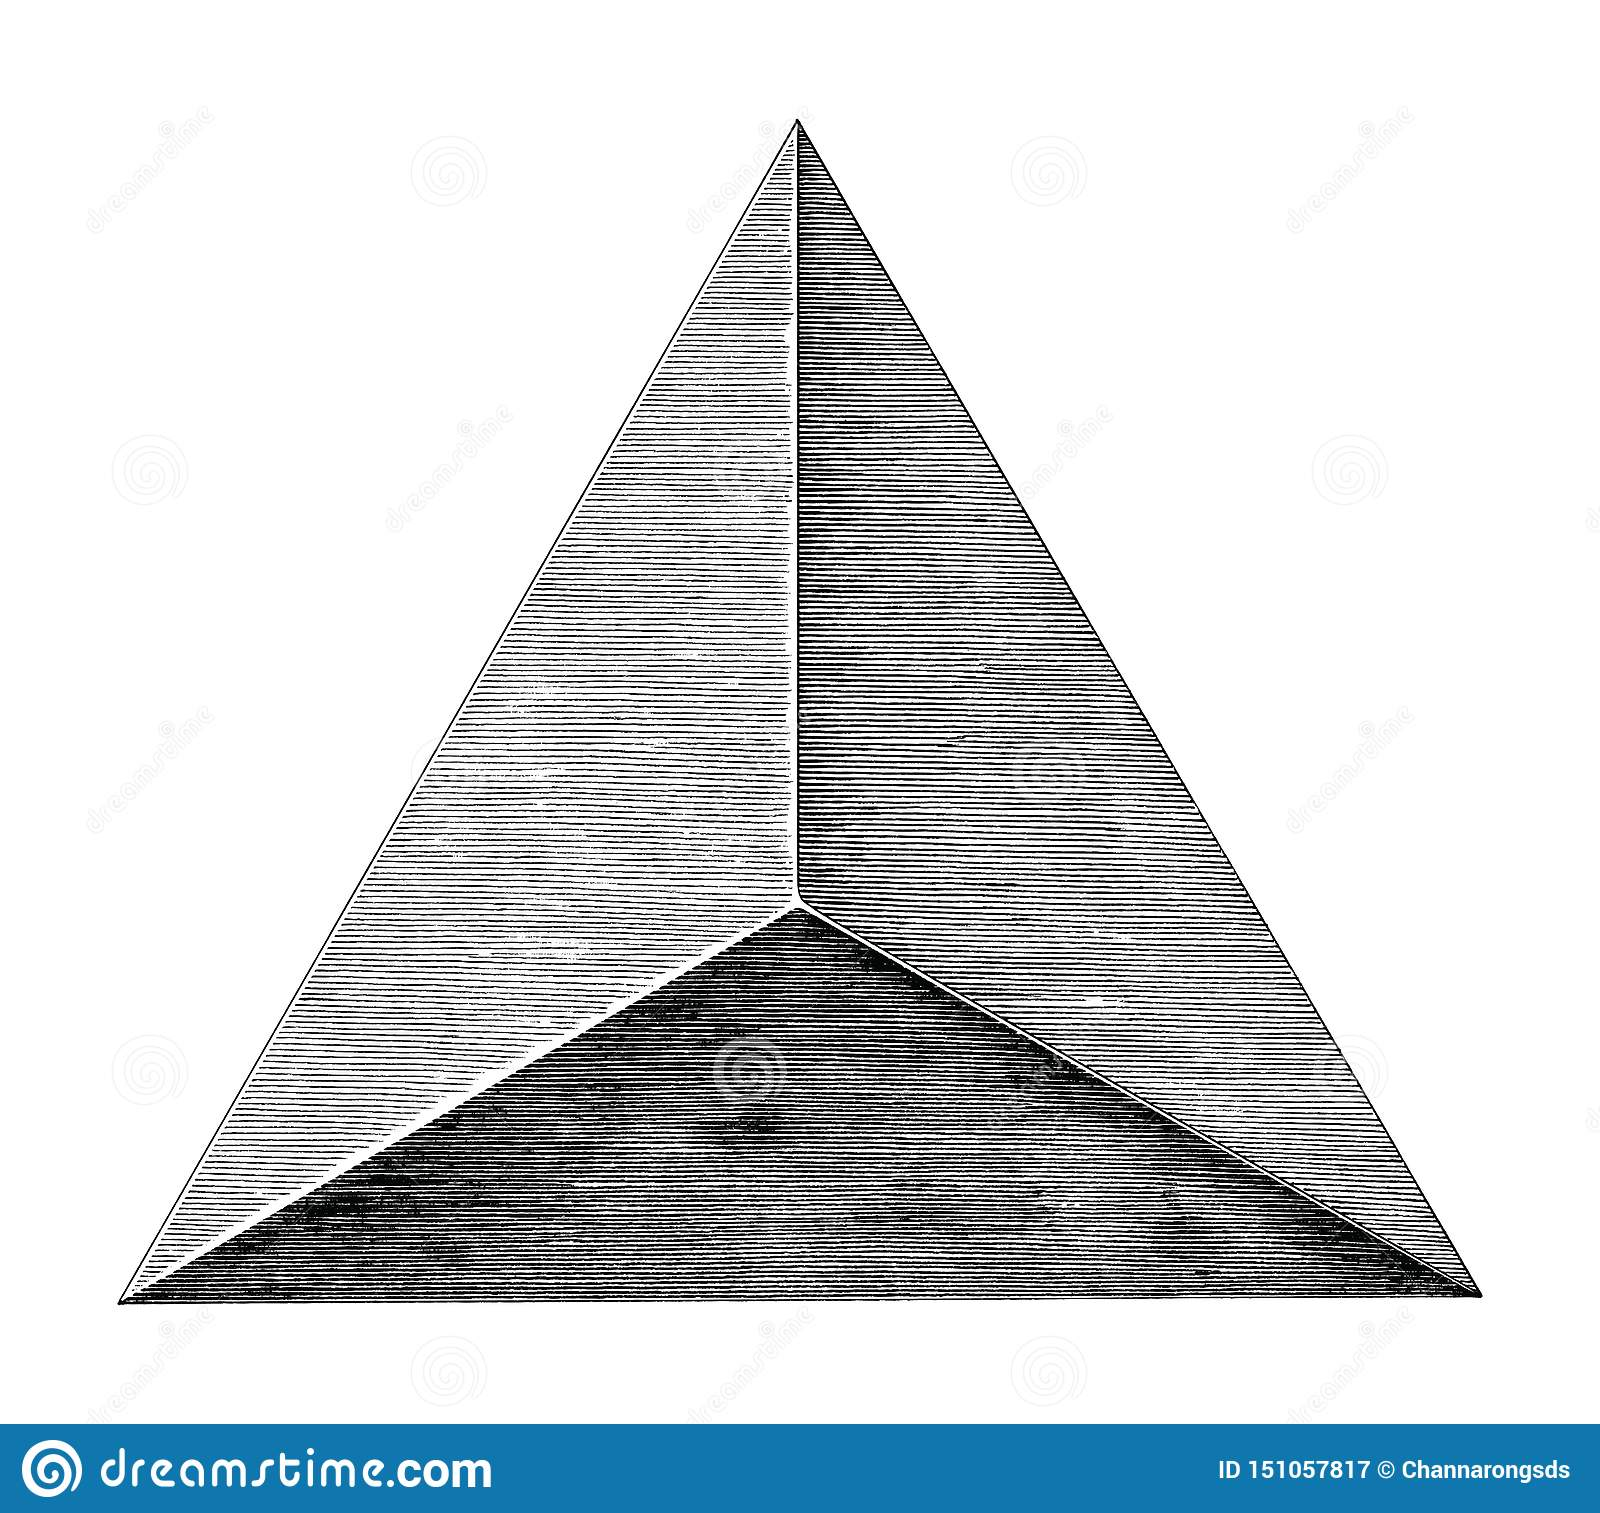 Instrument Clipart Black And White Triangle Instrument Coloring H8062 Image  Provided - EpiCentro Festival